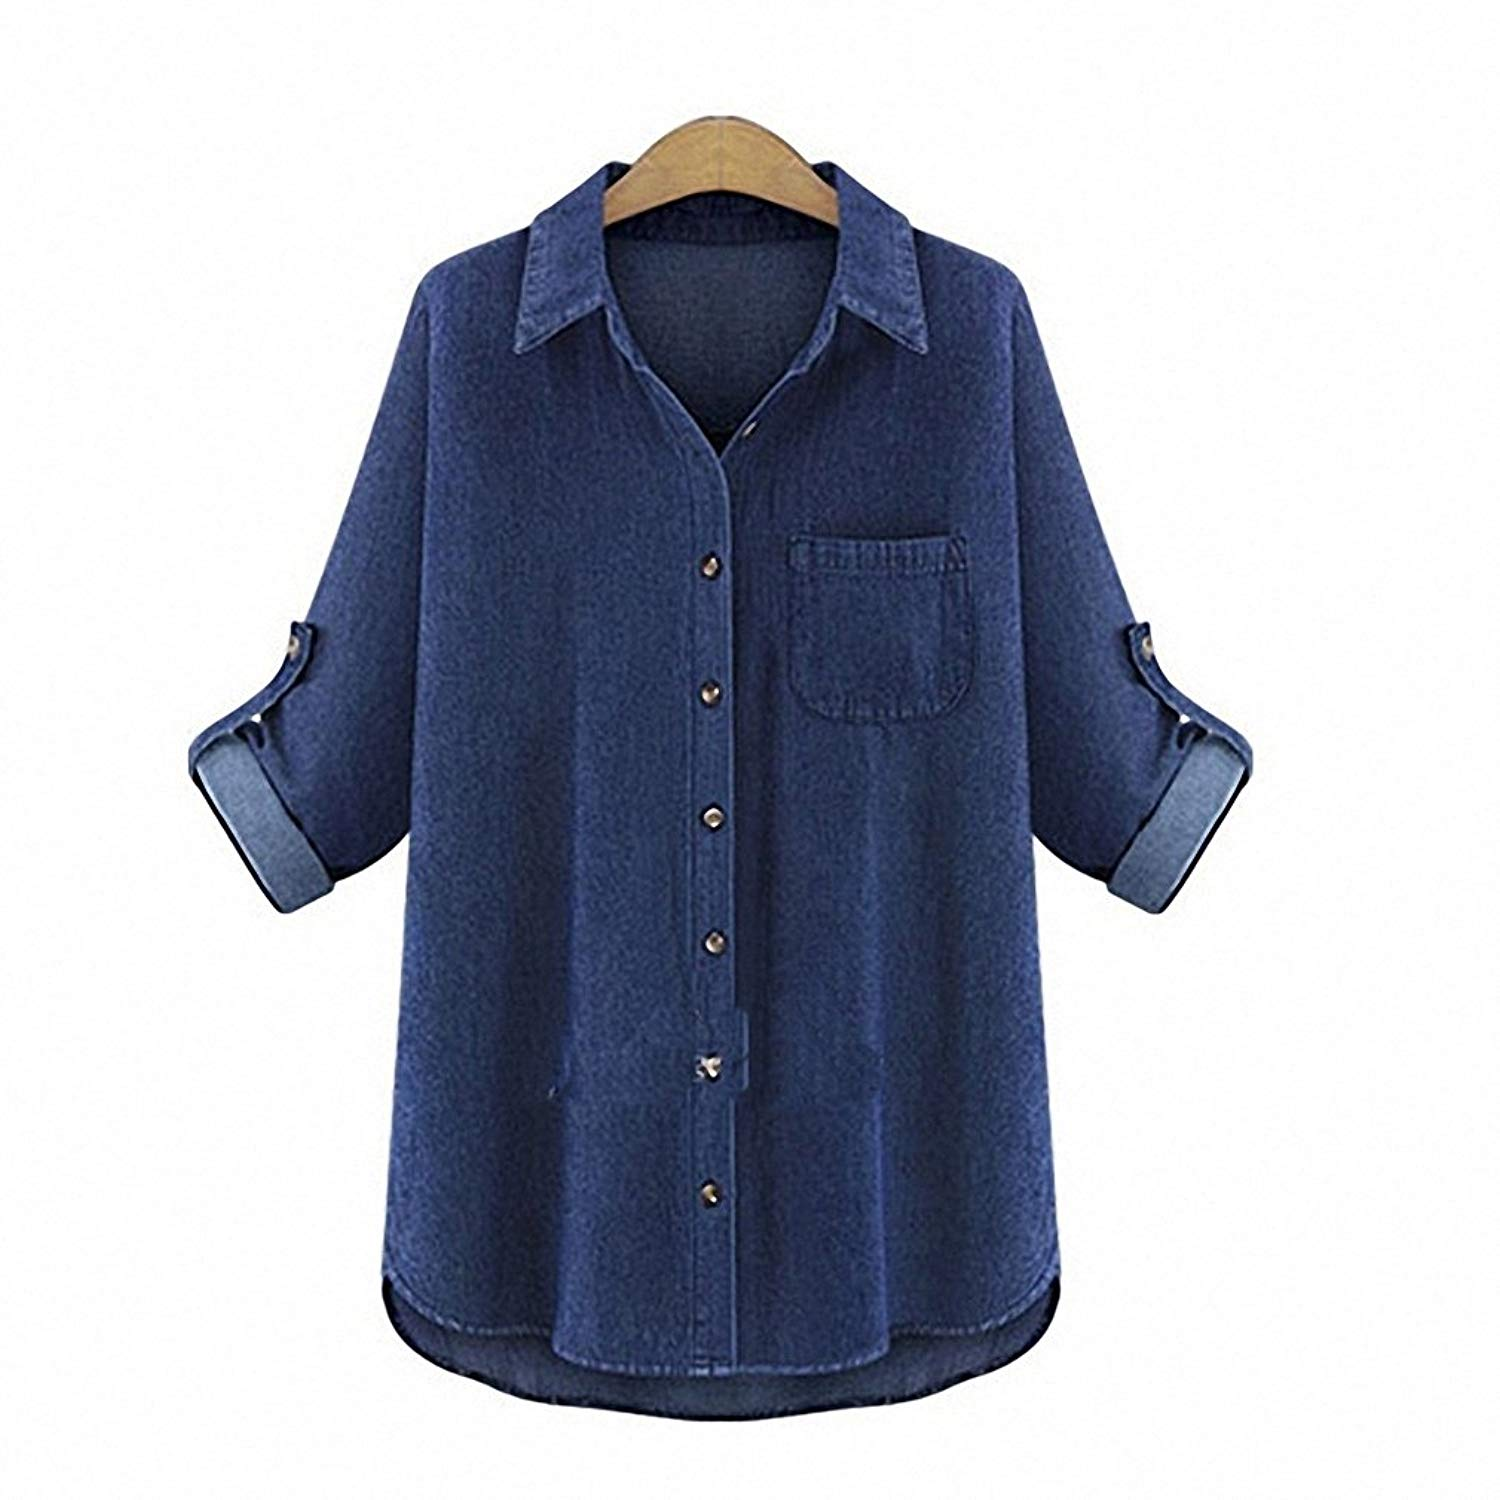 a05d9190d3b Get Quotations · Denim Shirt Female Plus Size Long Sleeve Women s Jeans  Shirt Slim Ladies Tops Blusas